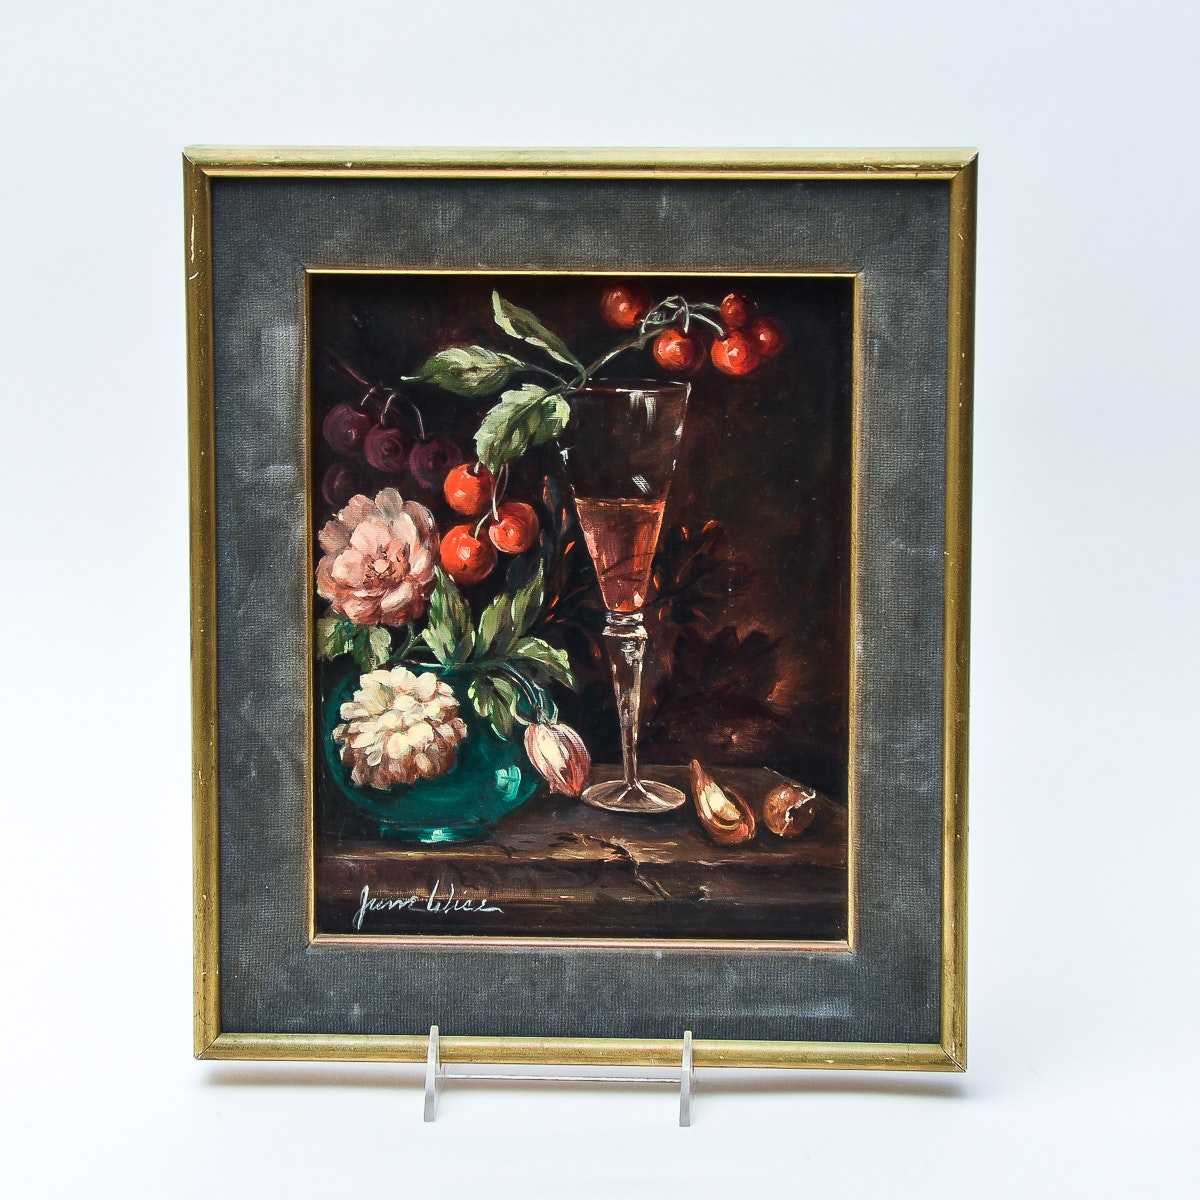 June Wise Still Life on Canvas Painting